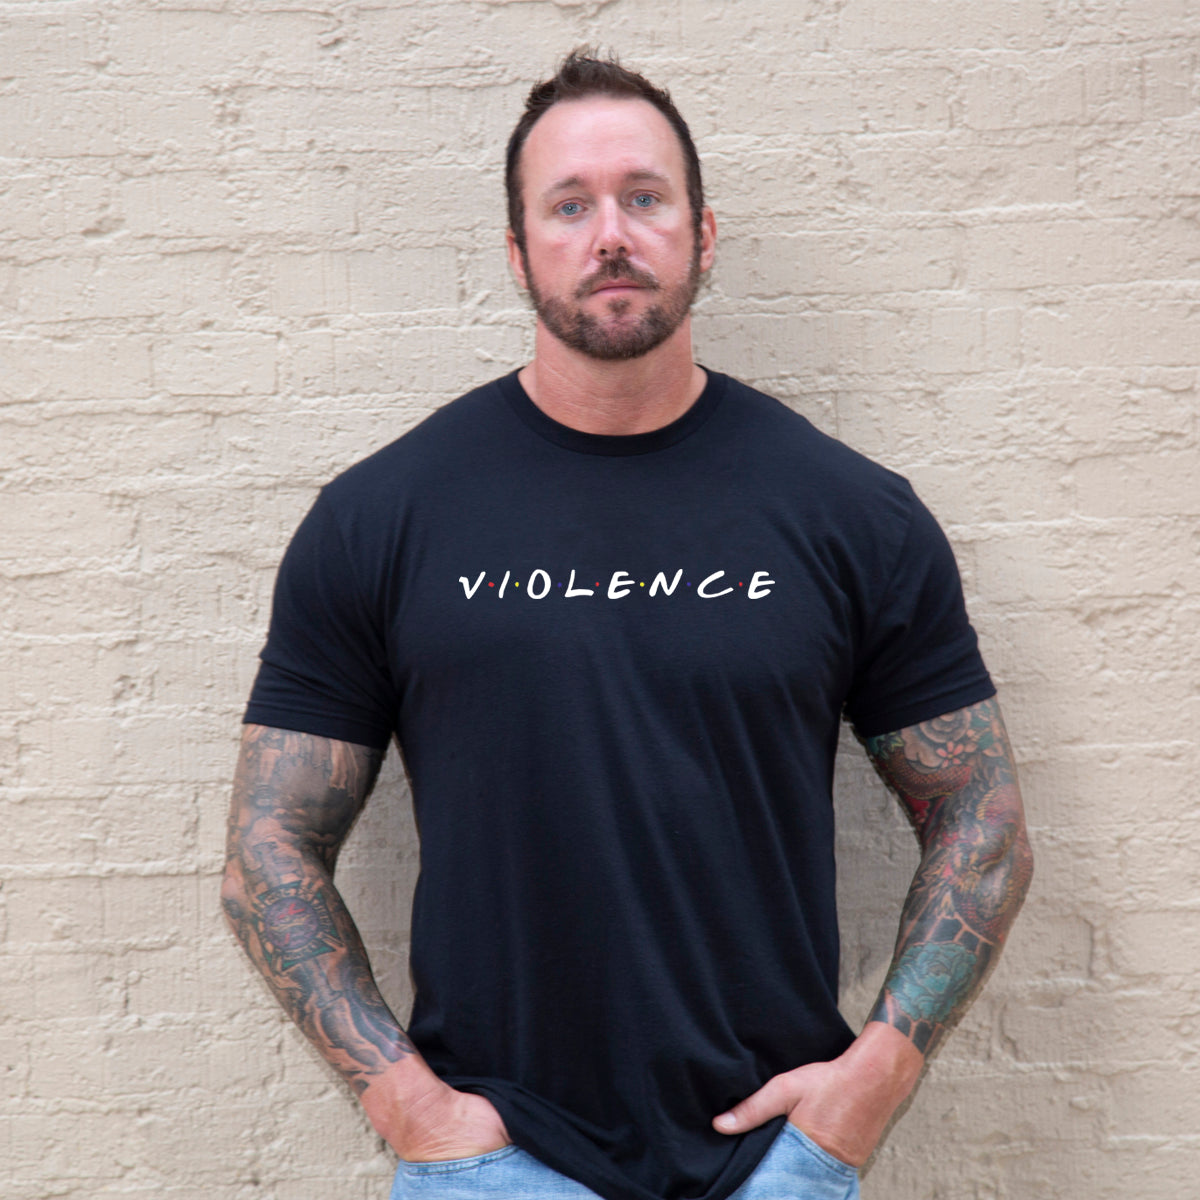 Friendly Violence -  - T-Shirts - Pipe Hitters Union